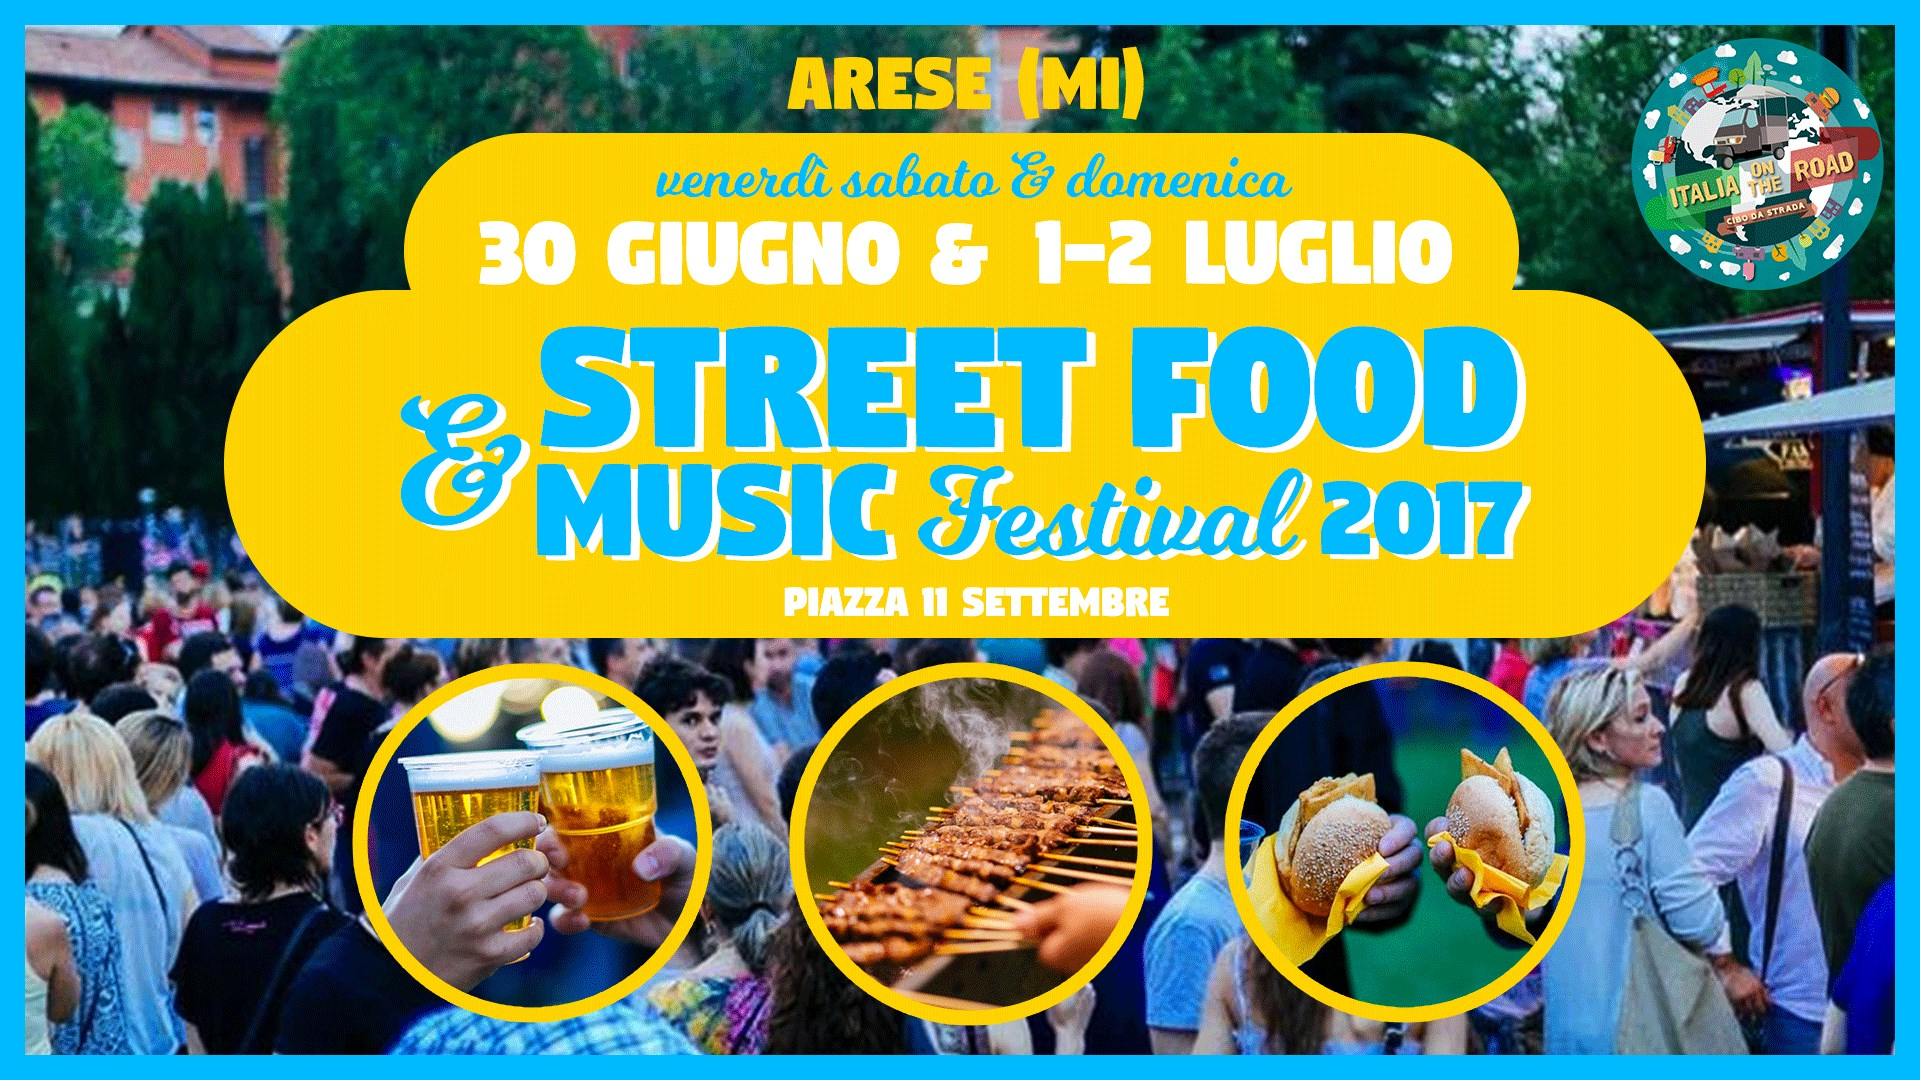 Street Food & Music Festival - Arese